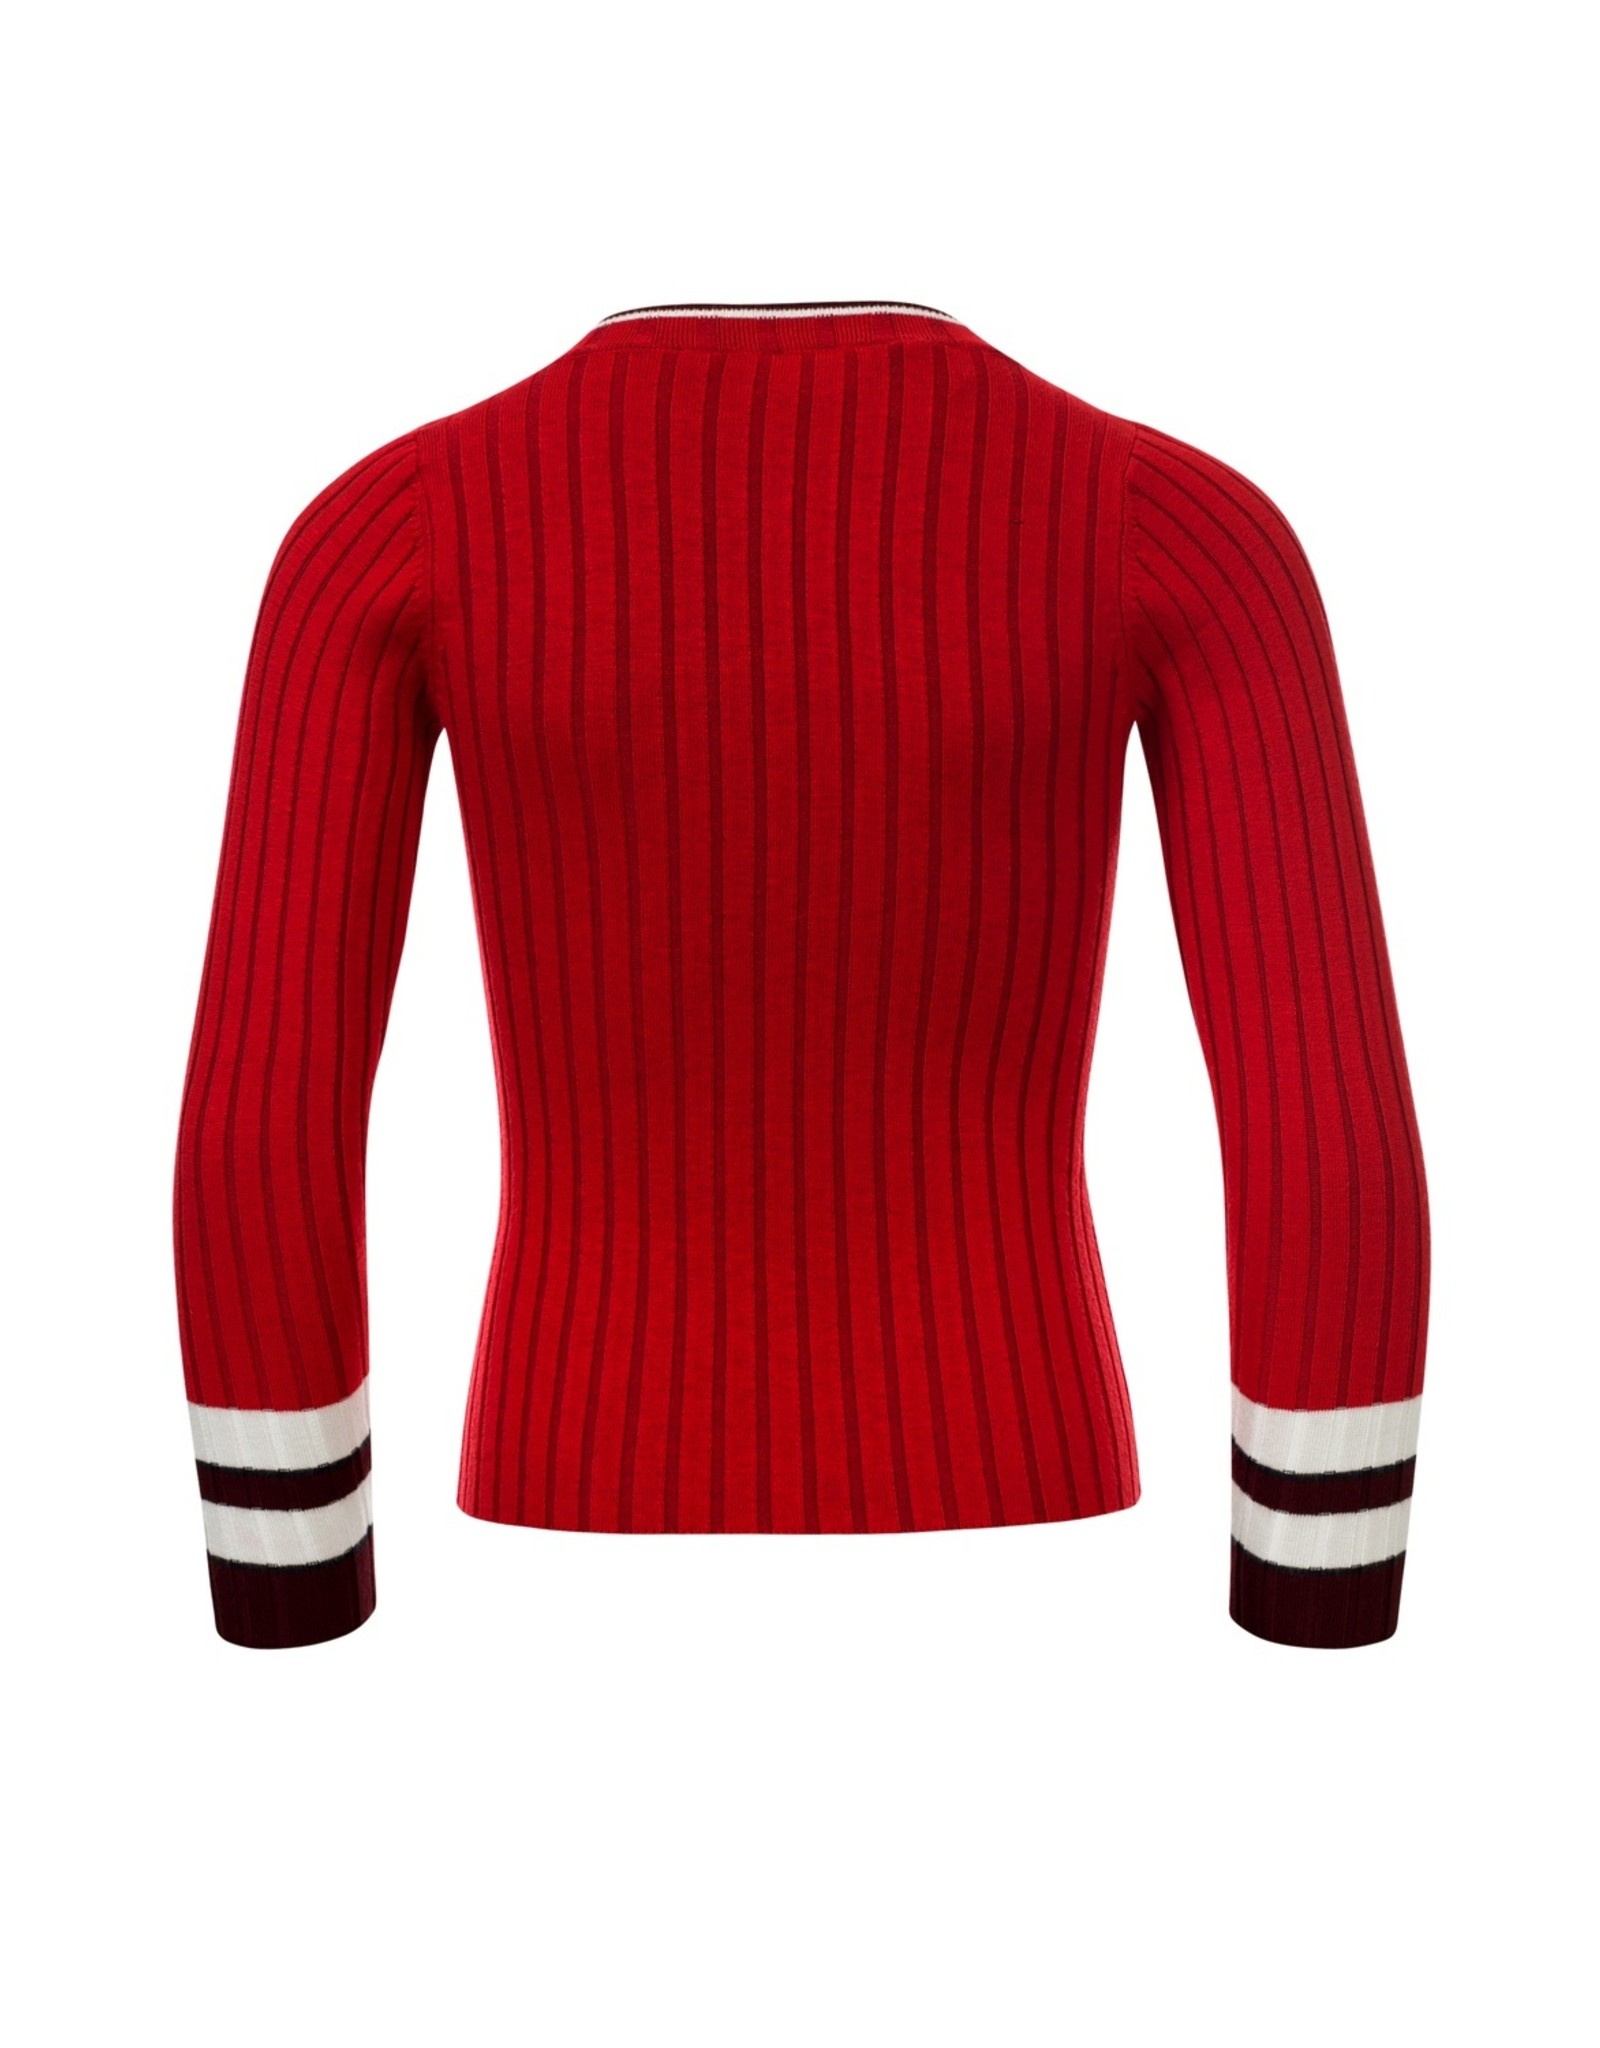 LOOXS 10sixteen Girls knitted top scarlet red